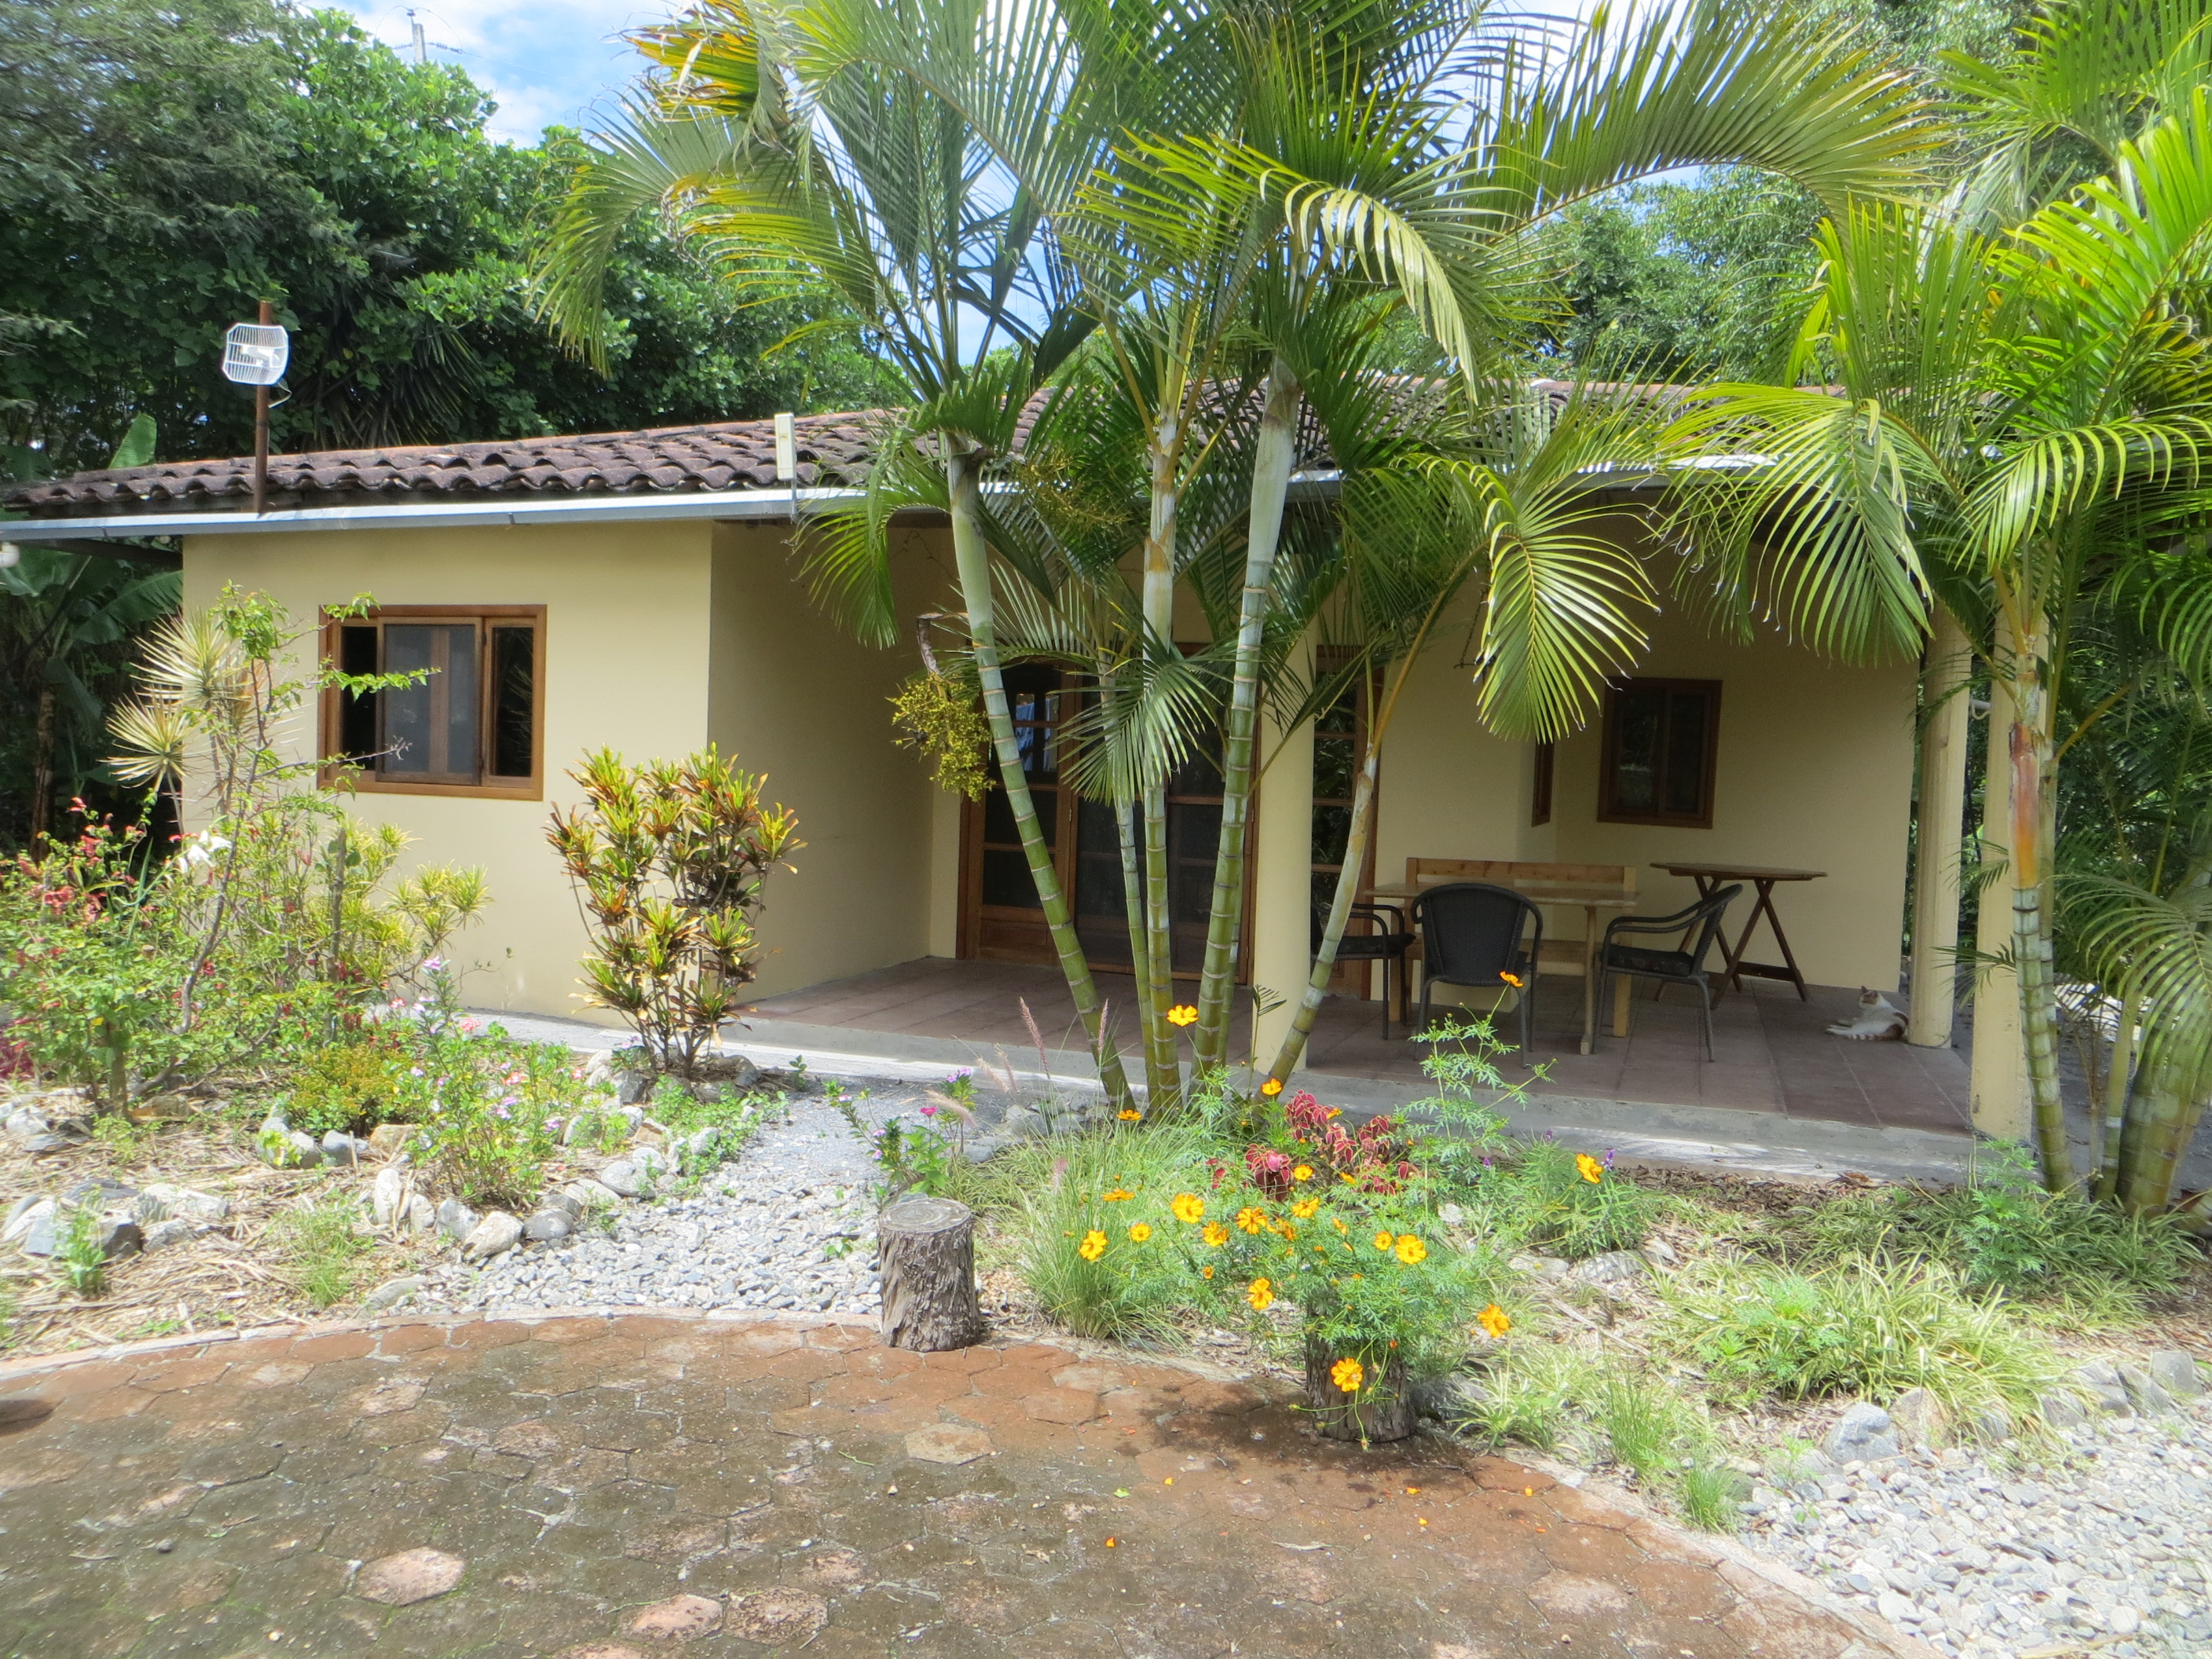 expat exchange 2 houses plus casita on 2 acres tip for living